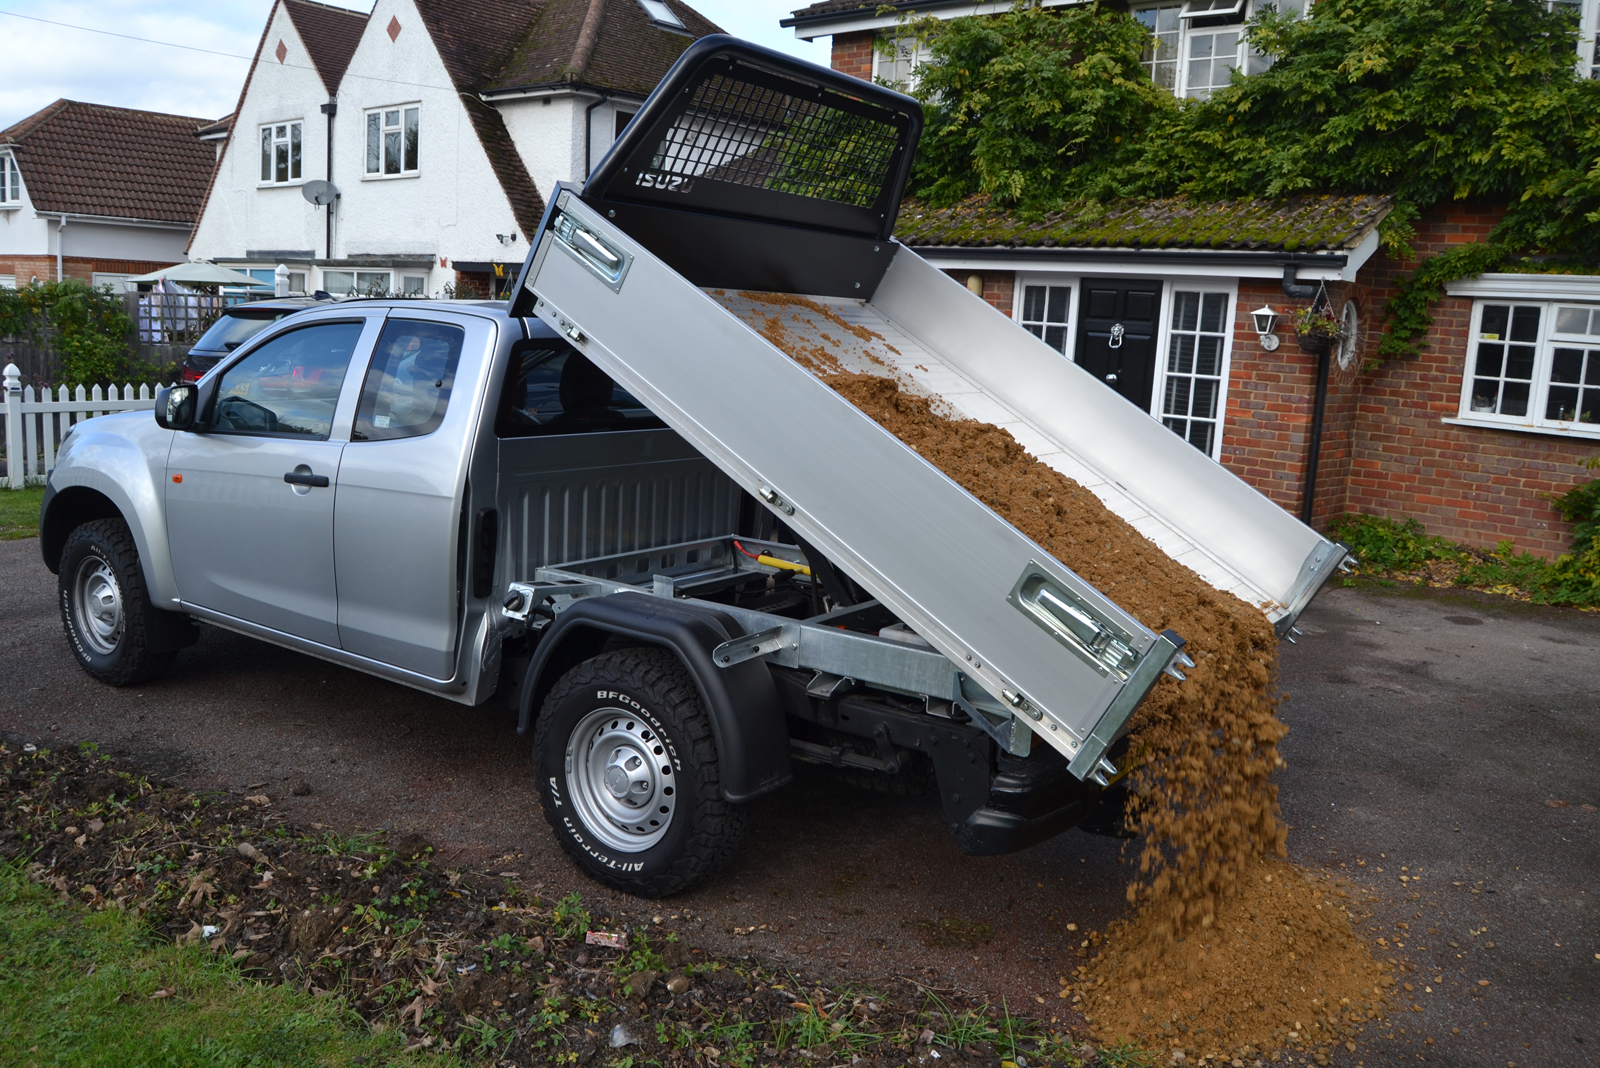 Isuzu's tipper truck alternative